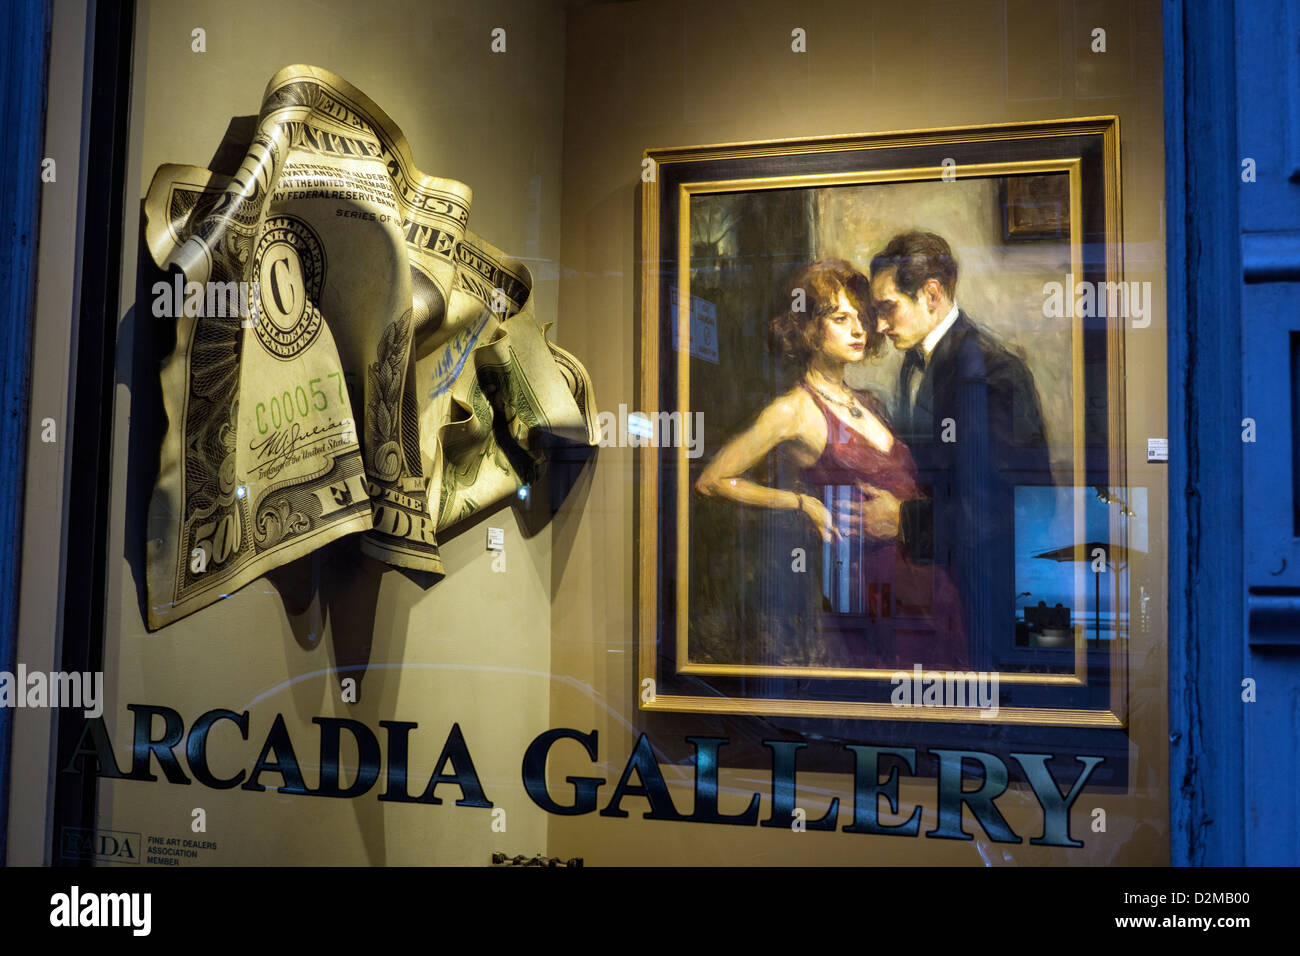 Art works in the window of the Arcadia Gallery in SoHo in New York City - Stock Image